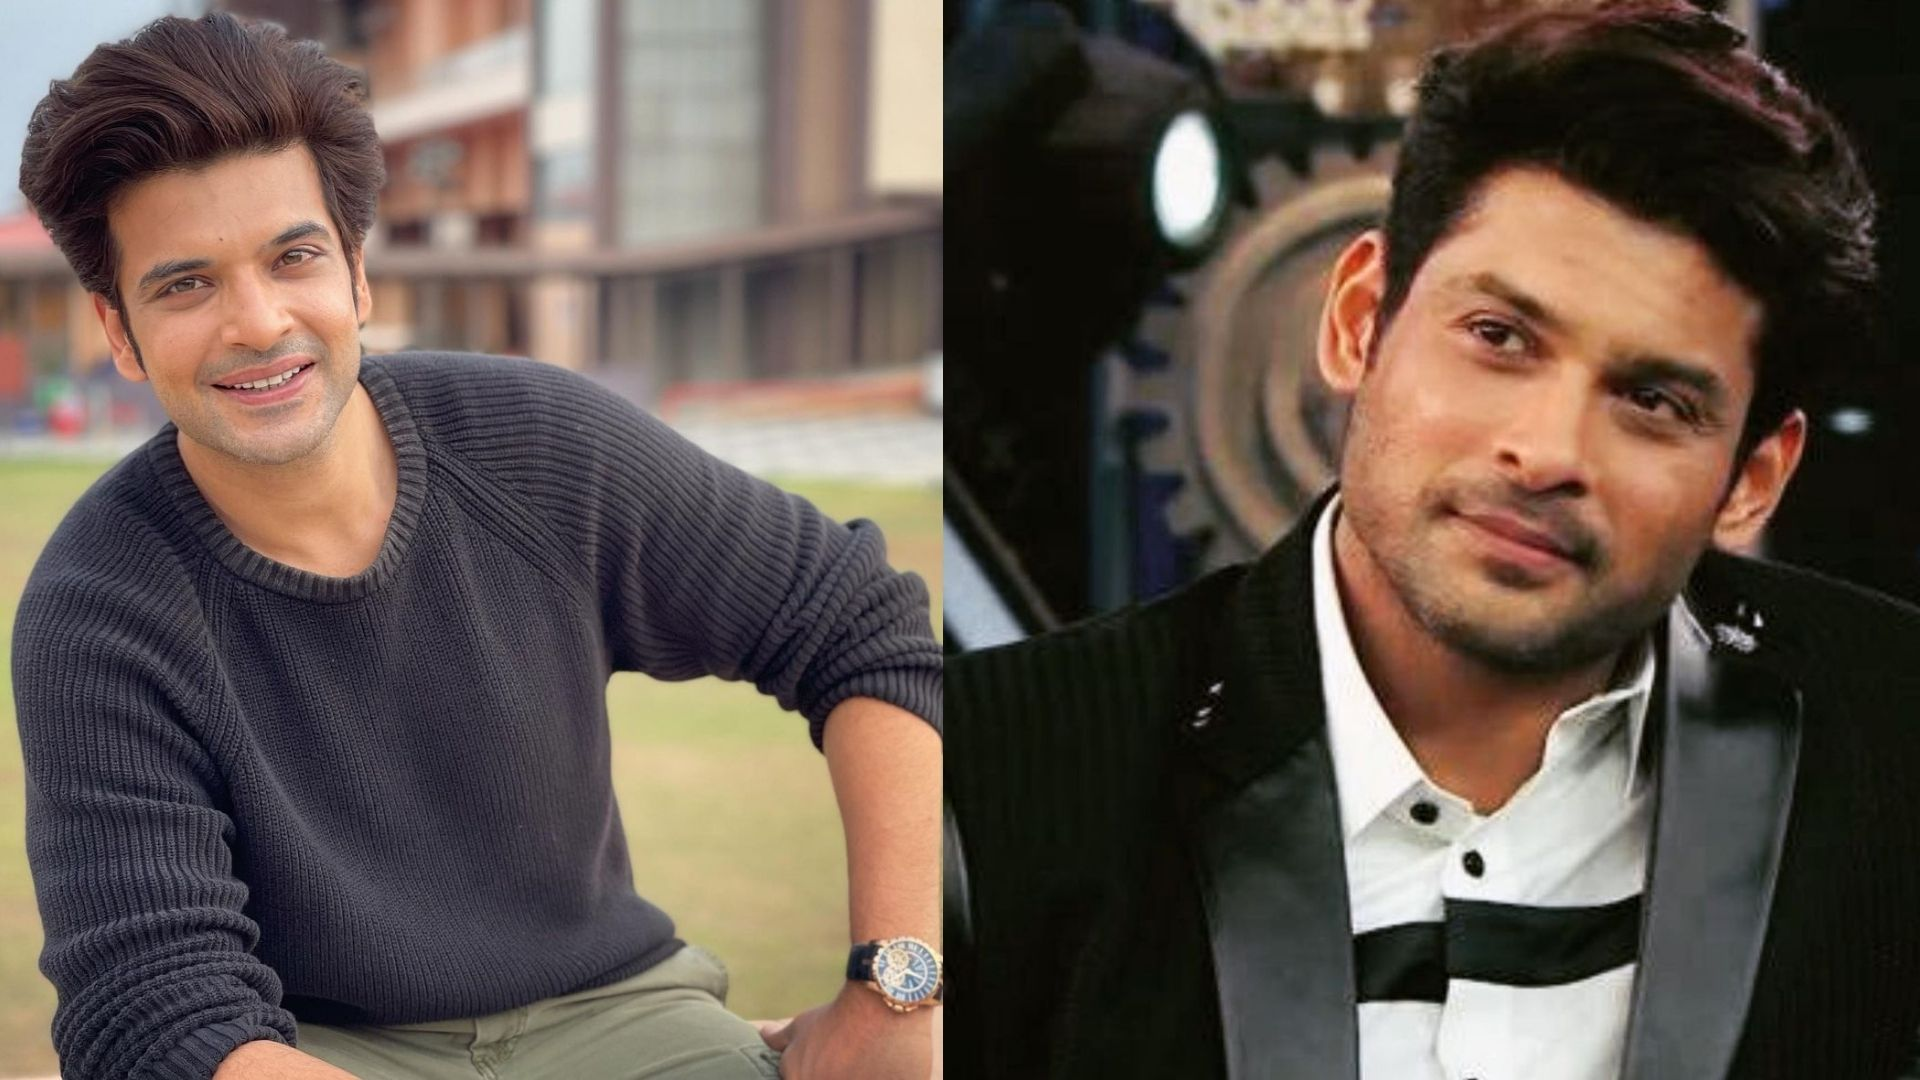 Bigg Boss 15: Karan Kundrra Reveals To Be Inspired By BB 13 Winner Sidharth Shukla; Says 'He Was Strong And Played Extremely Well'